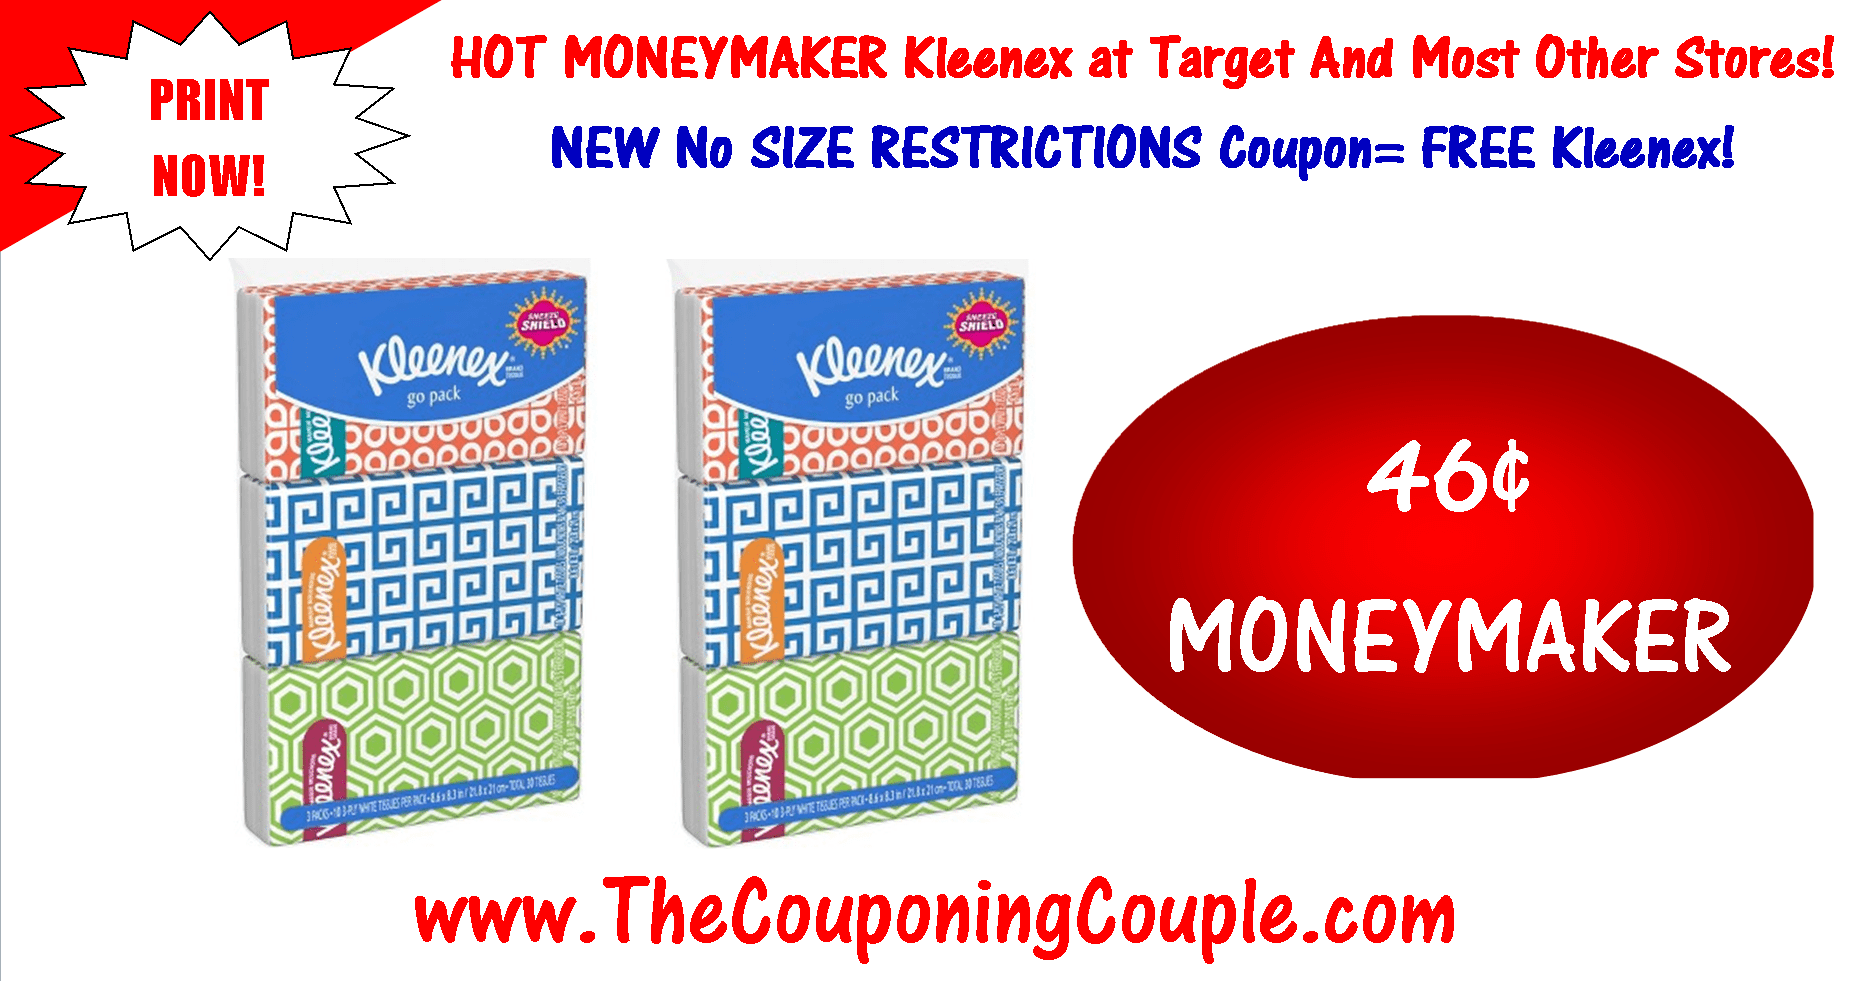 photograph regarding Kleenex Printable Coupon named Very hot Kleenex MONEYMAKER ~ PRINT NO Dimensions Restriction Coupon Currently!